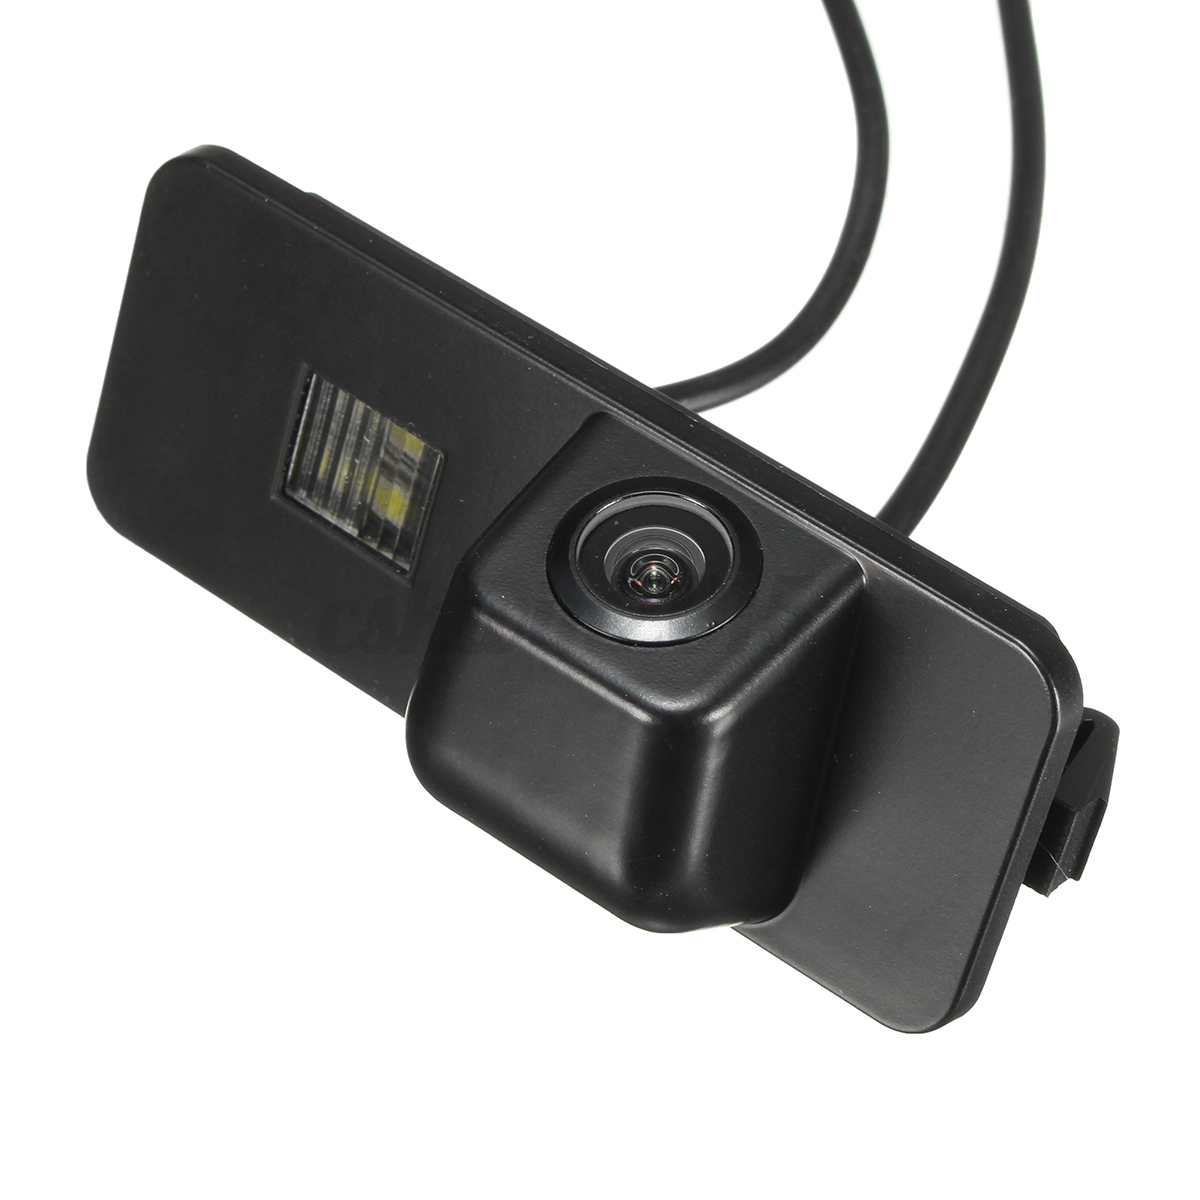 Car Reverse Camera Rear View Parking Sensor For Vw